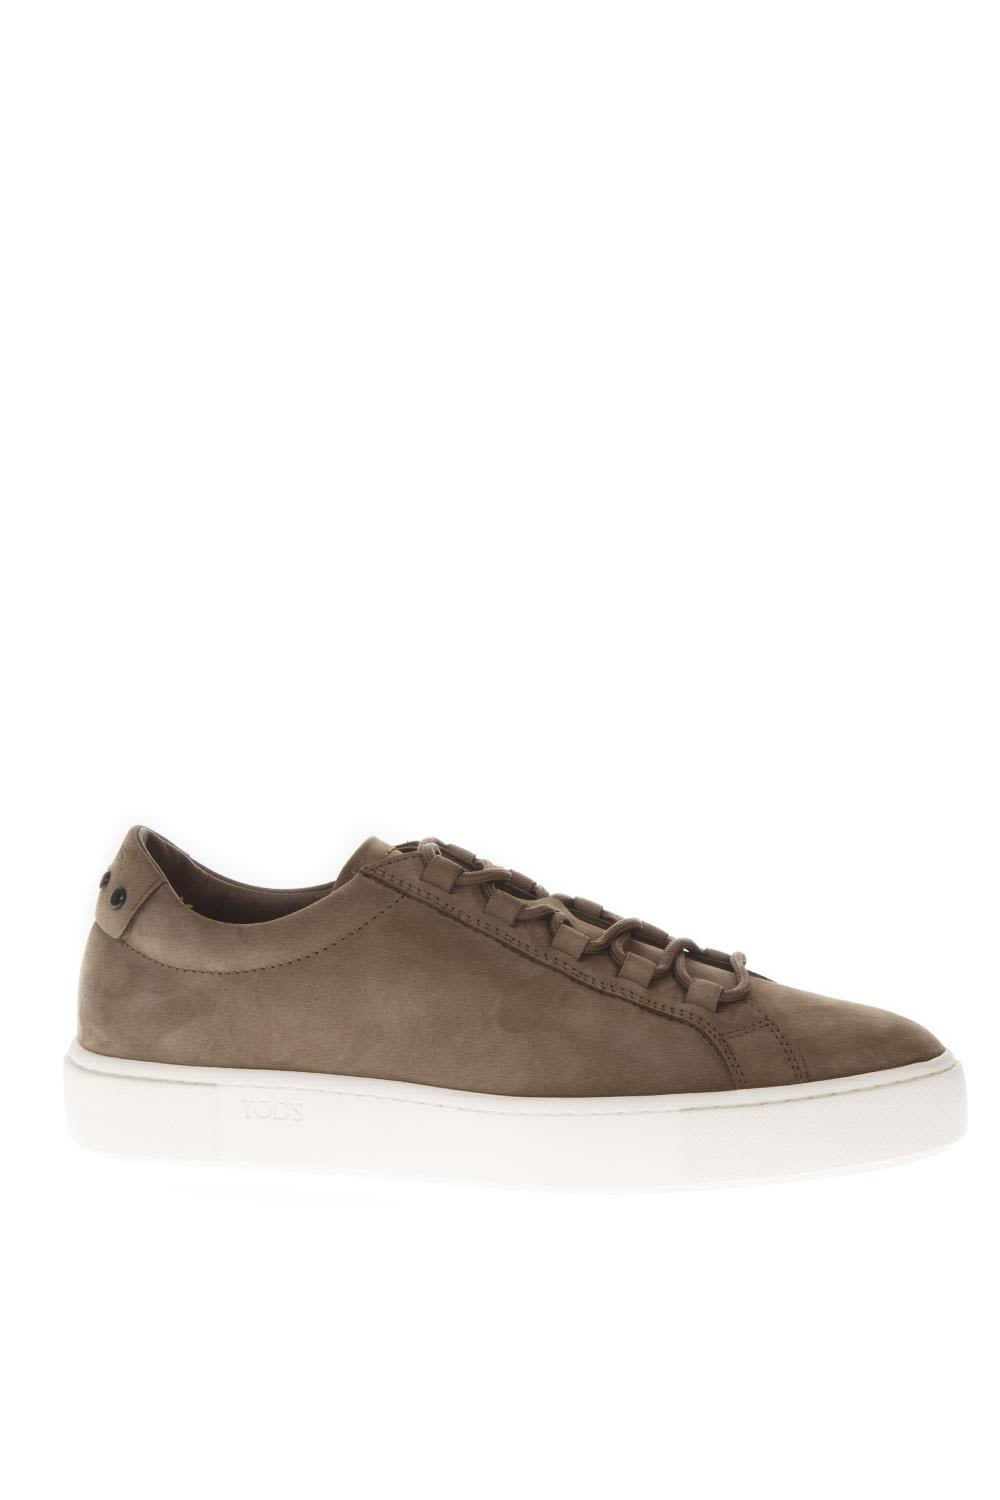 Tod's Nut Color Nabuk Sneakers